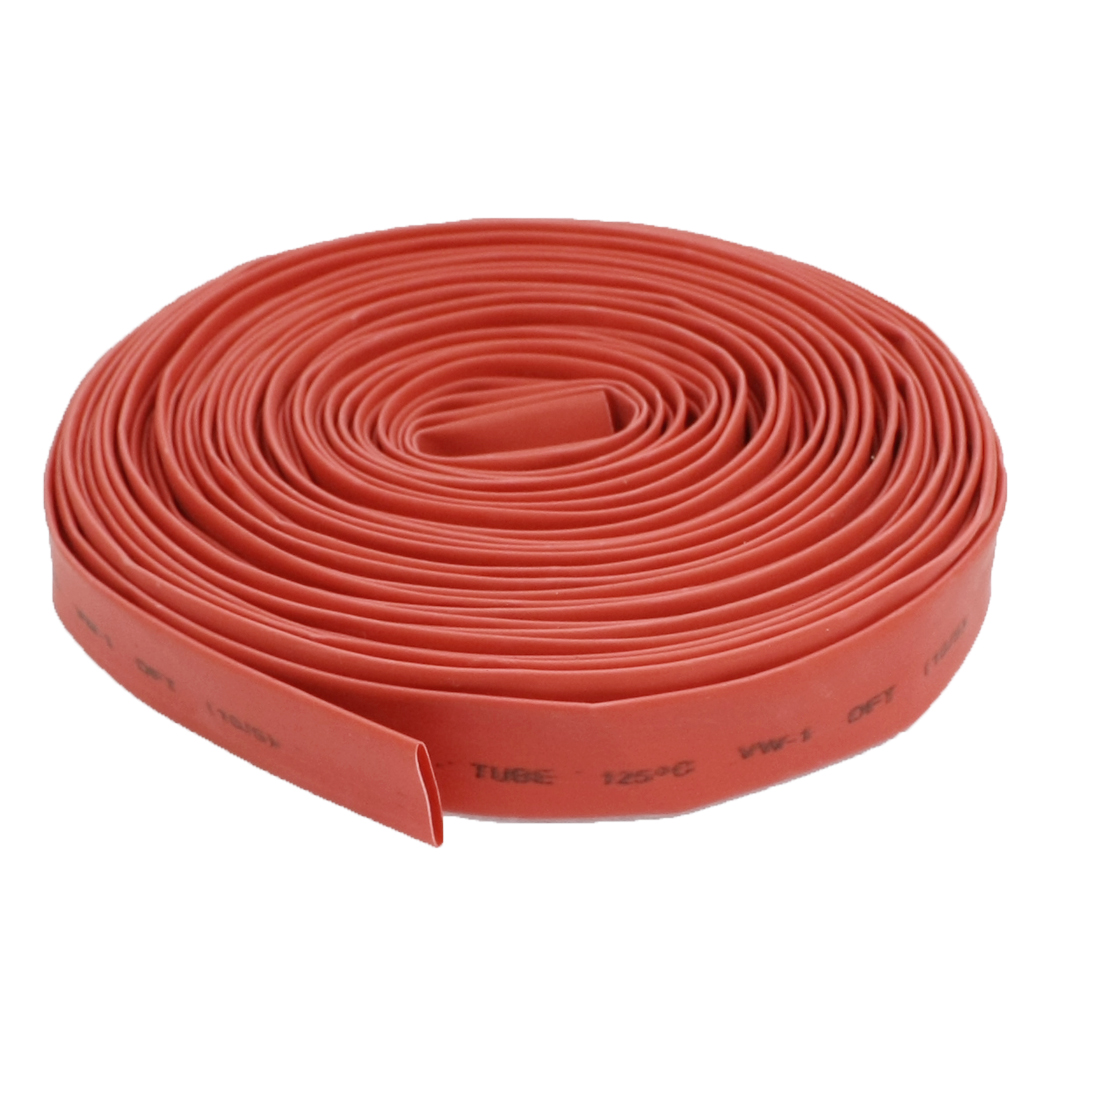 10M 32.8ft 10mm Diameter Heat Shrinkable Tube Shrink Tubing Red